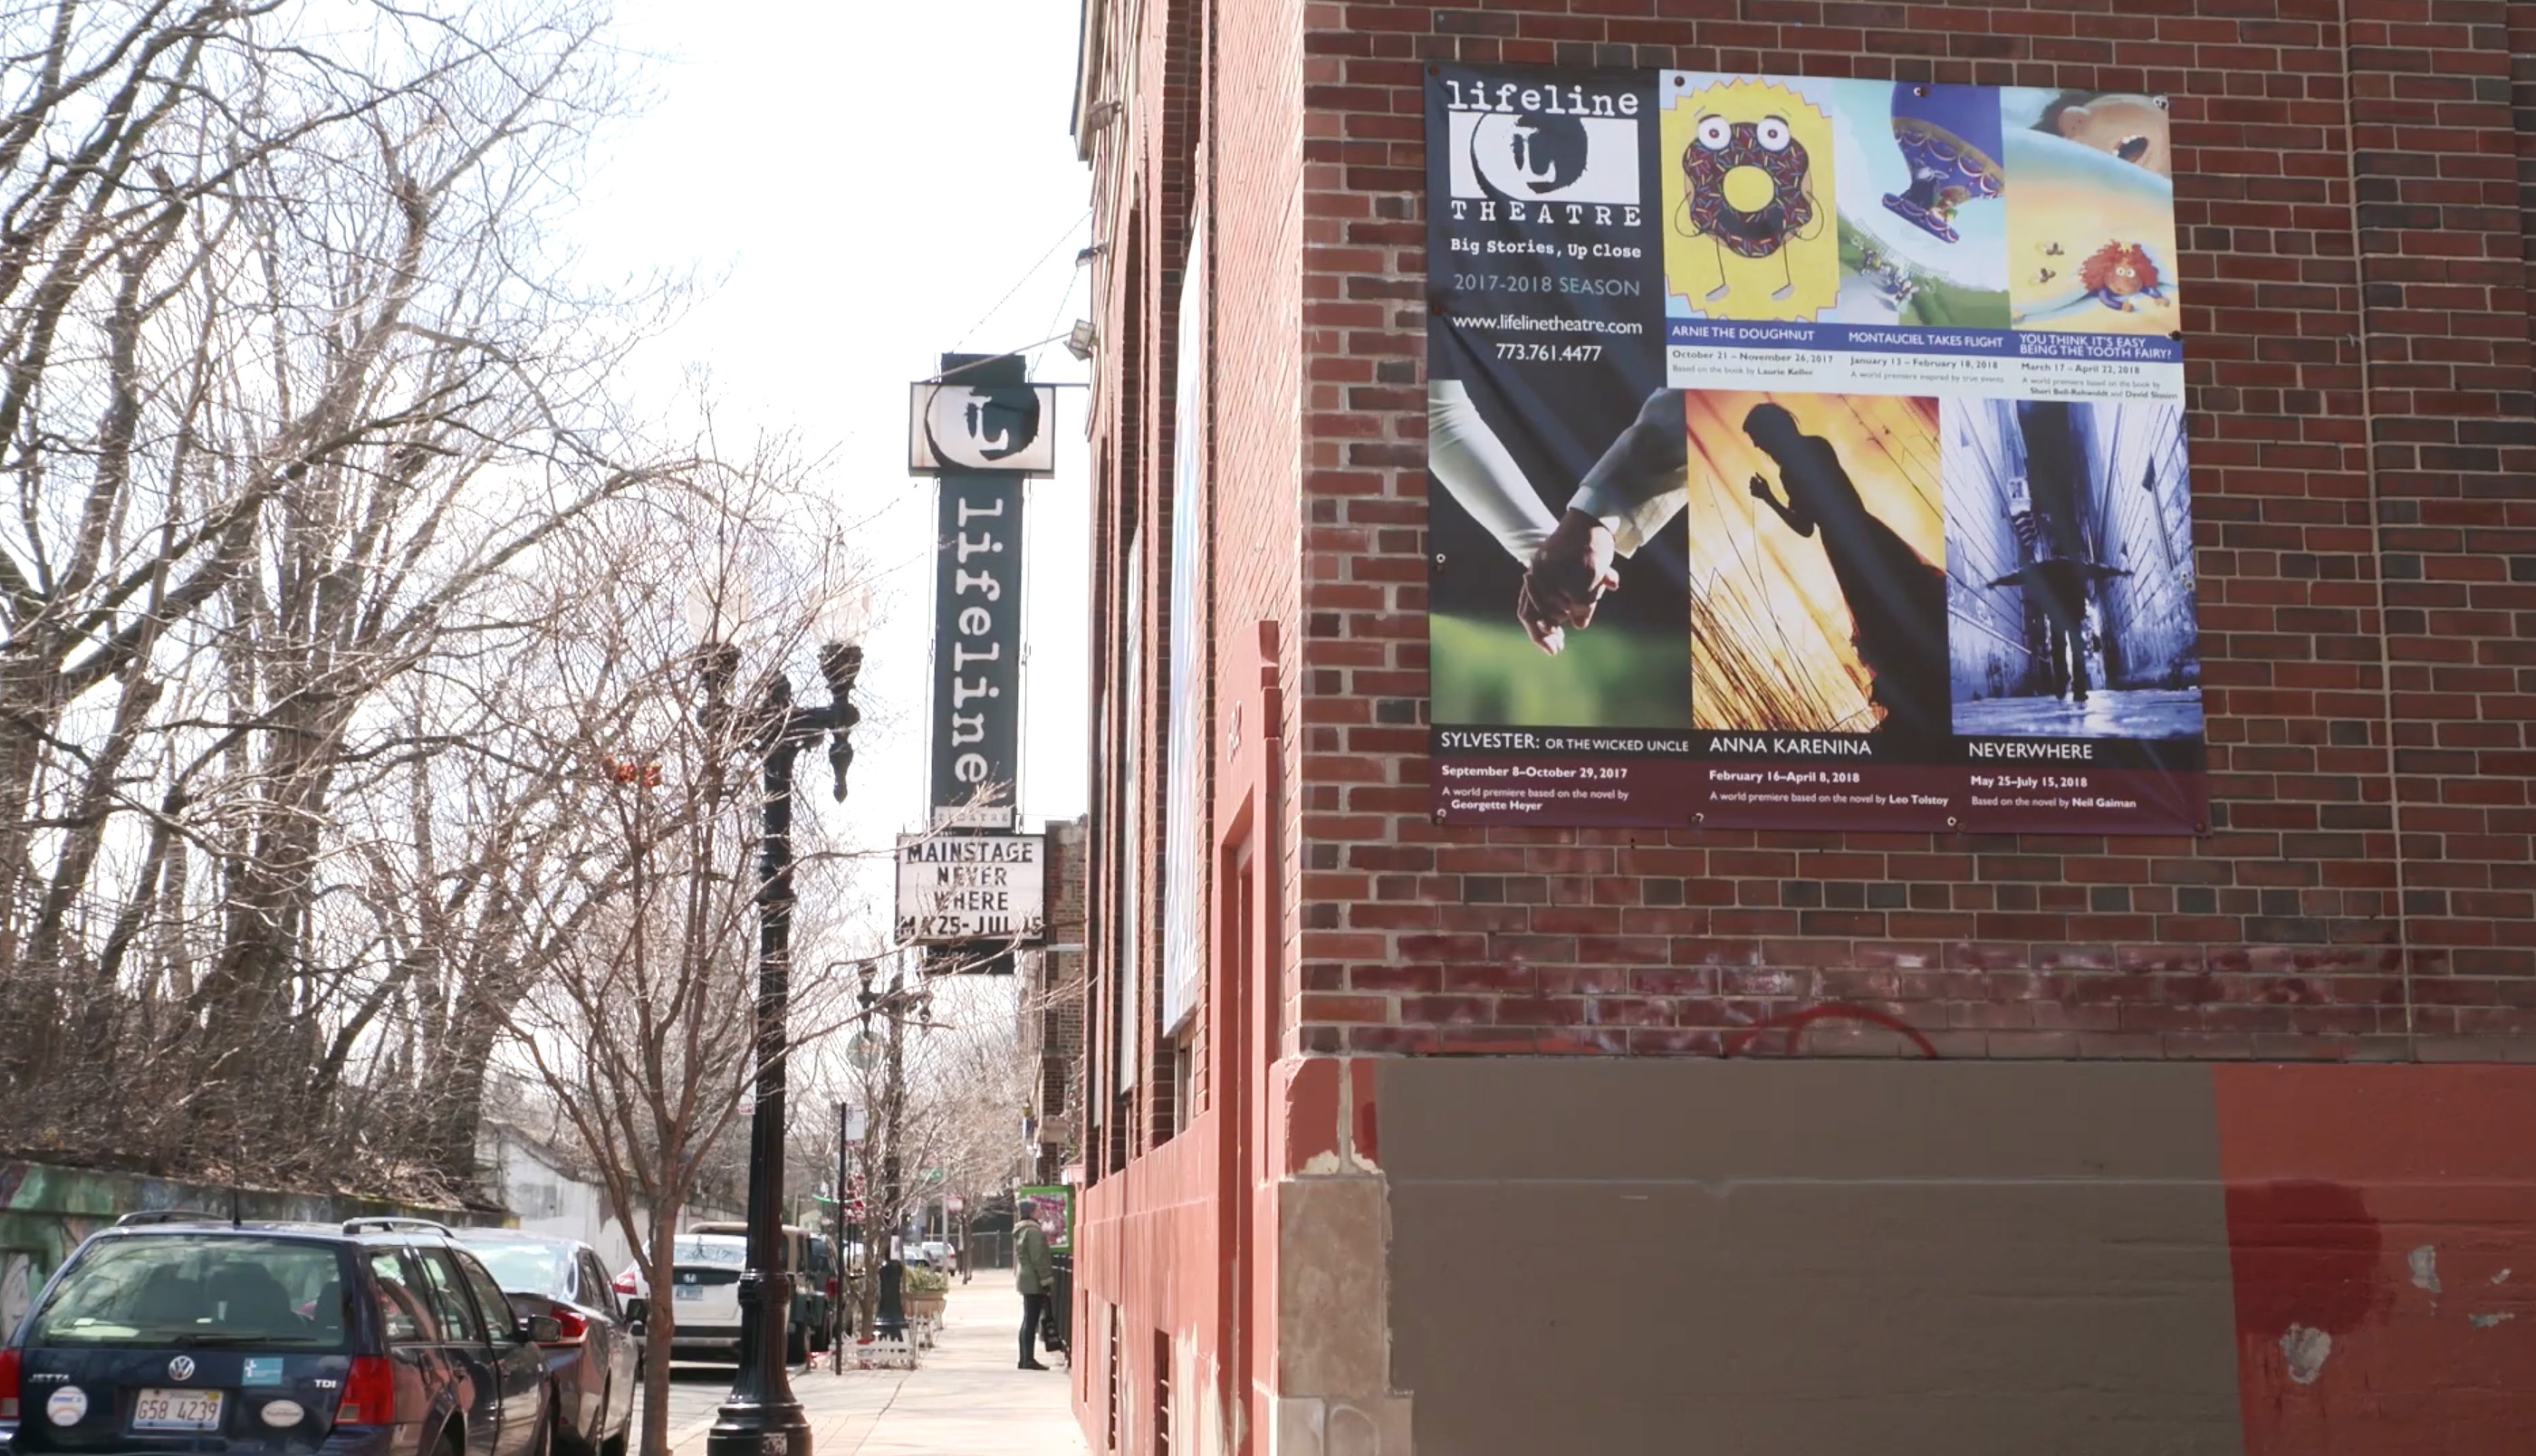 Lifeline Theatre makes its home in a converted ComEd substation in Rogers Park. The theater company has been awarded a Rick Bayless Family Foundation Grant.